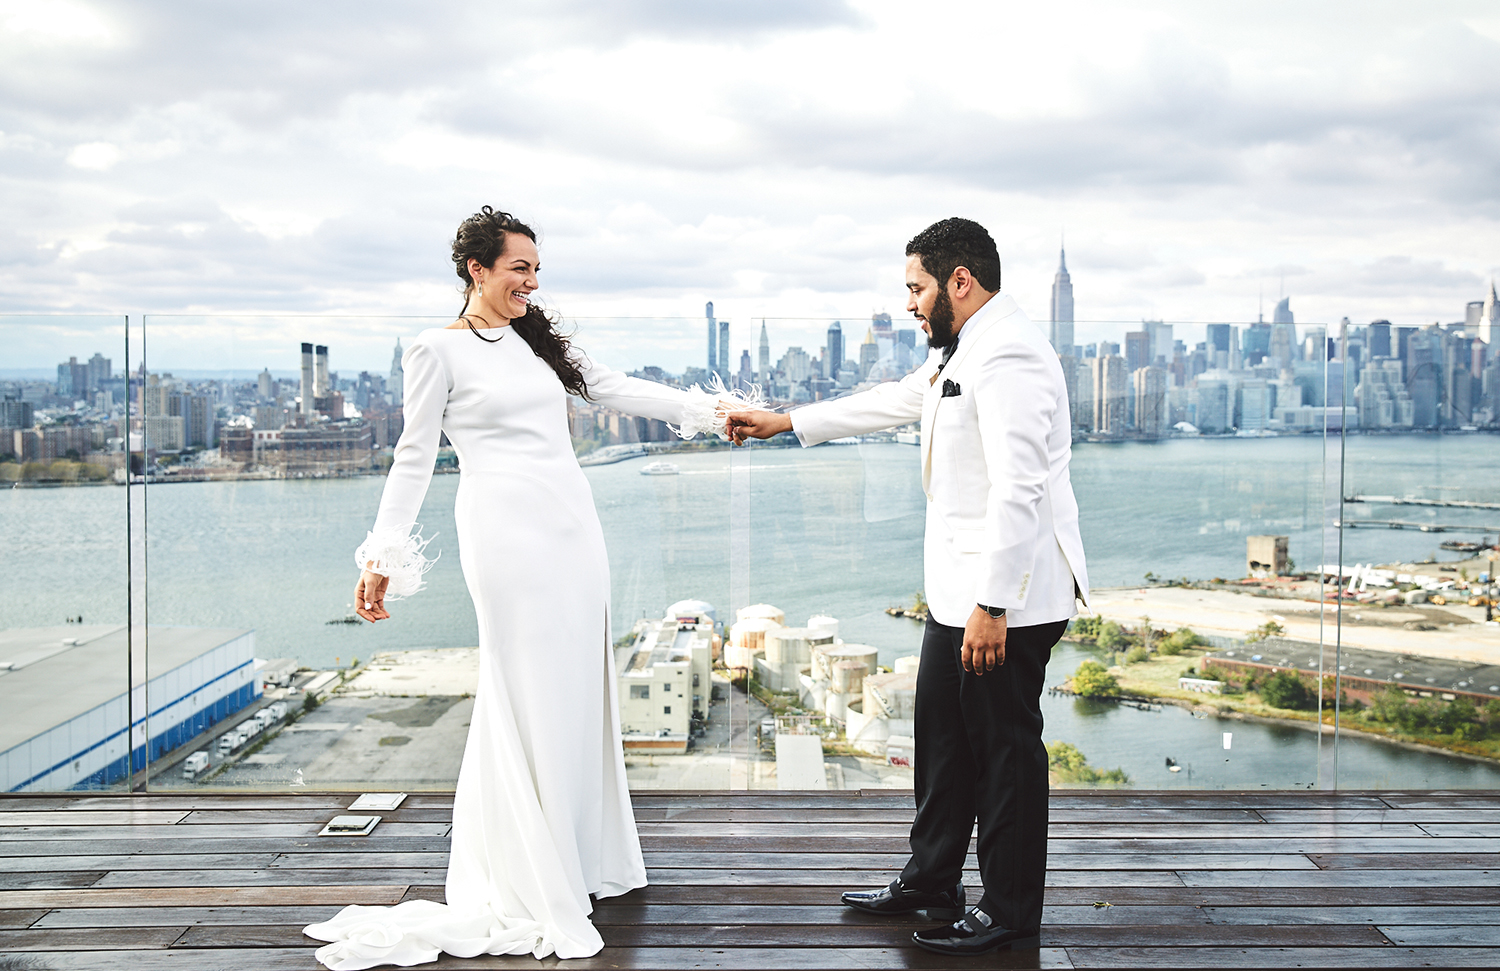 170930_WilliamValeWeddingPhotography_BrooklynWeddingPhotographer_By_BriJohnsonWeddings_0070.jpg